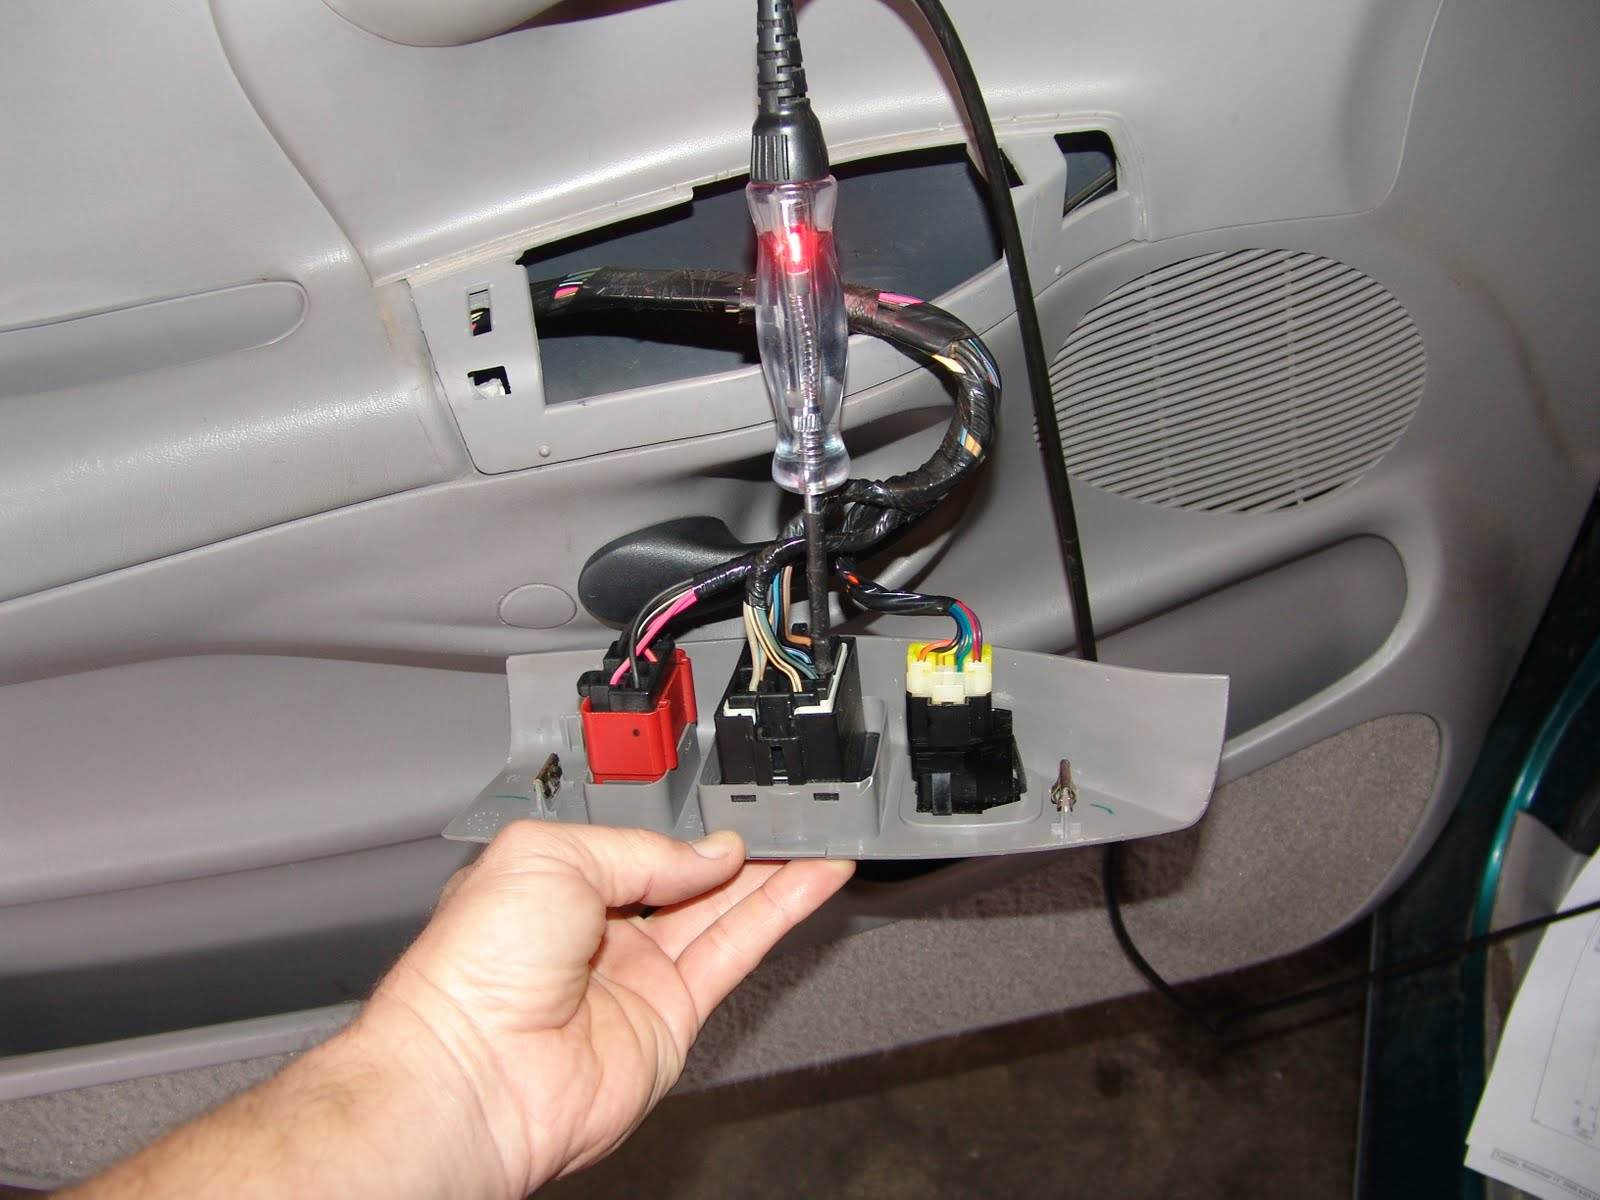 2007 Ford F 150 Supercrew Fuse Box Diagram 1997 F150 Changing The Gem Module Window Amp Wipers Inop